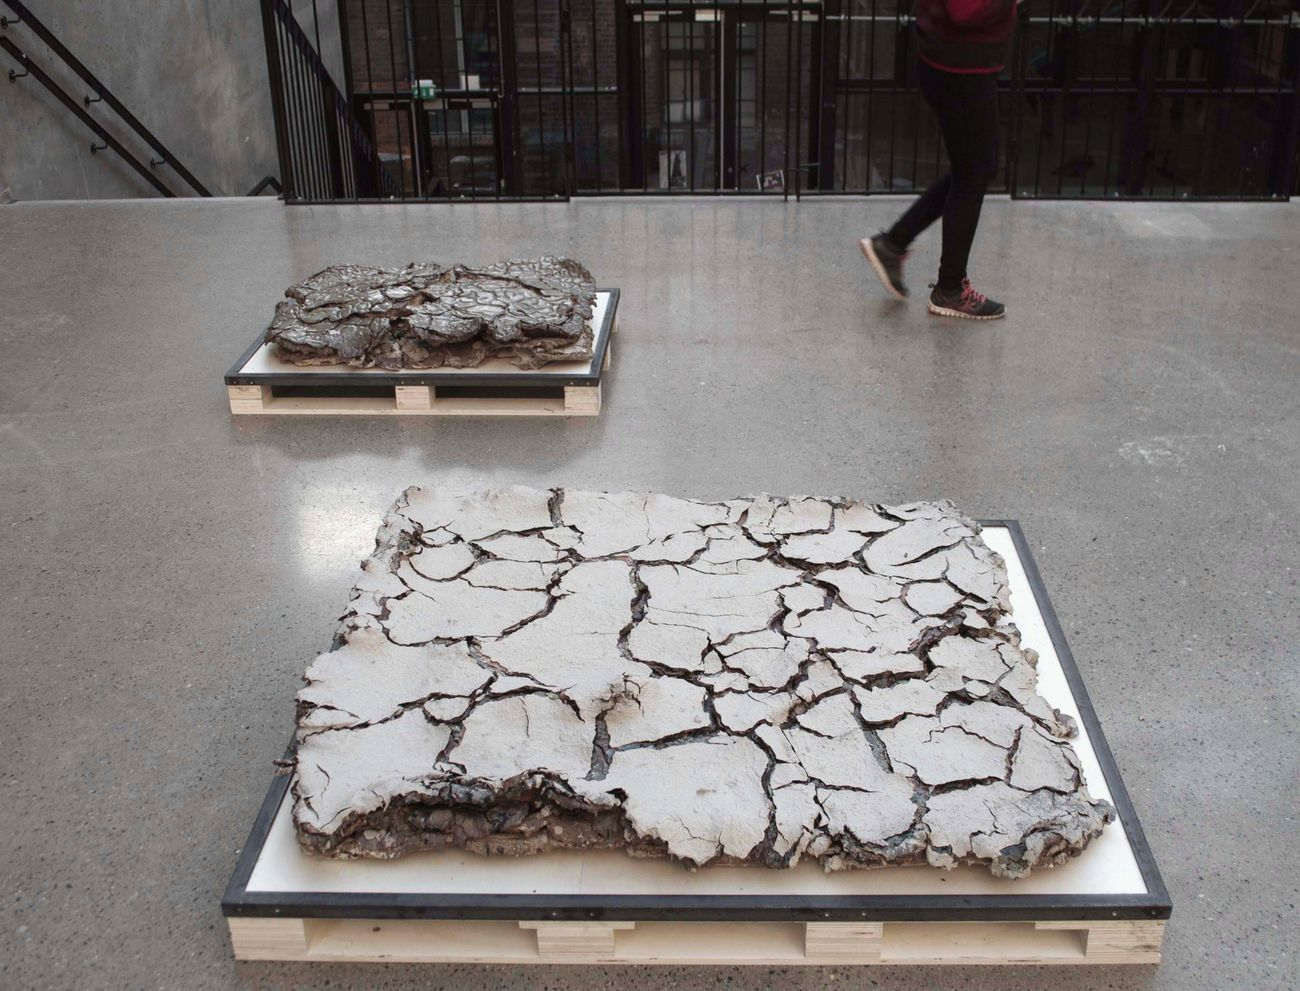 Katrine Koster Holst, Studeis of strata and crack formations_Slab #3 & #5, 2015-18